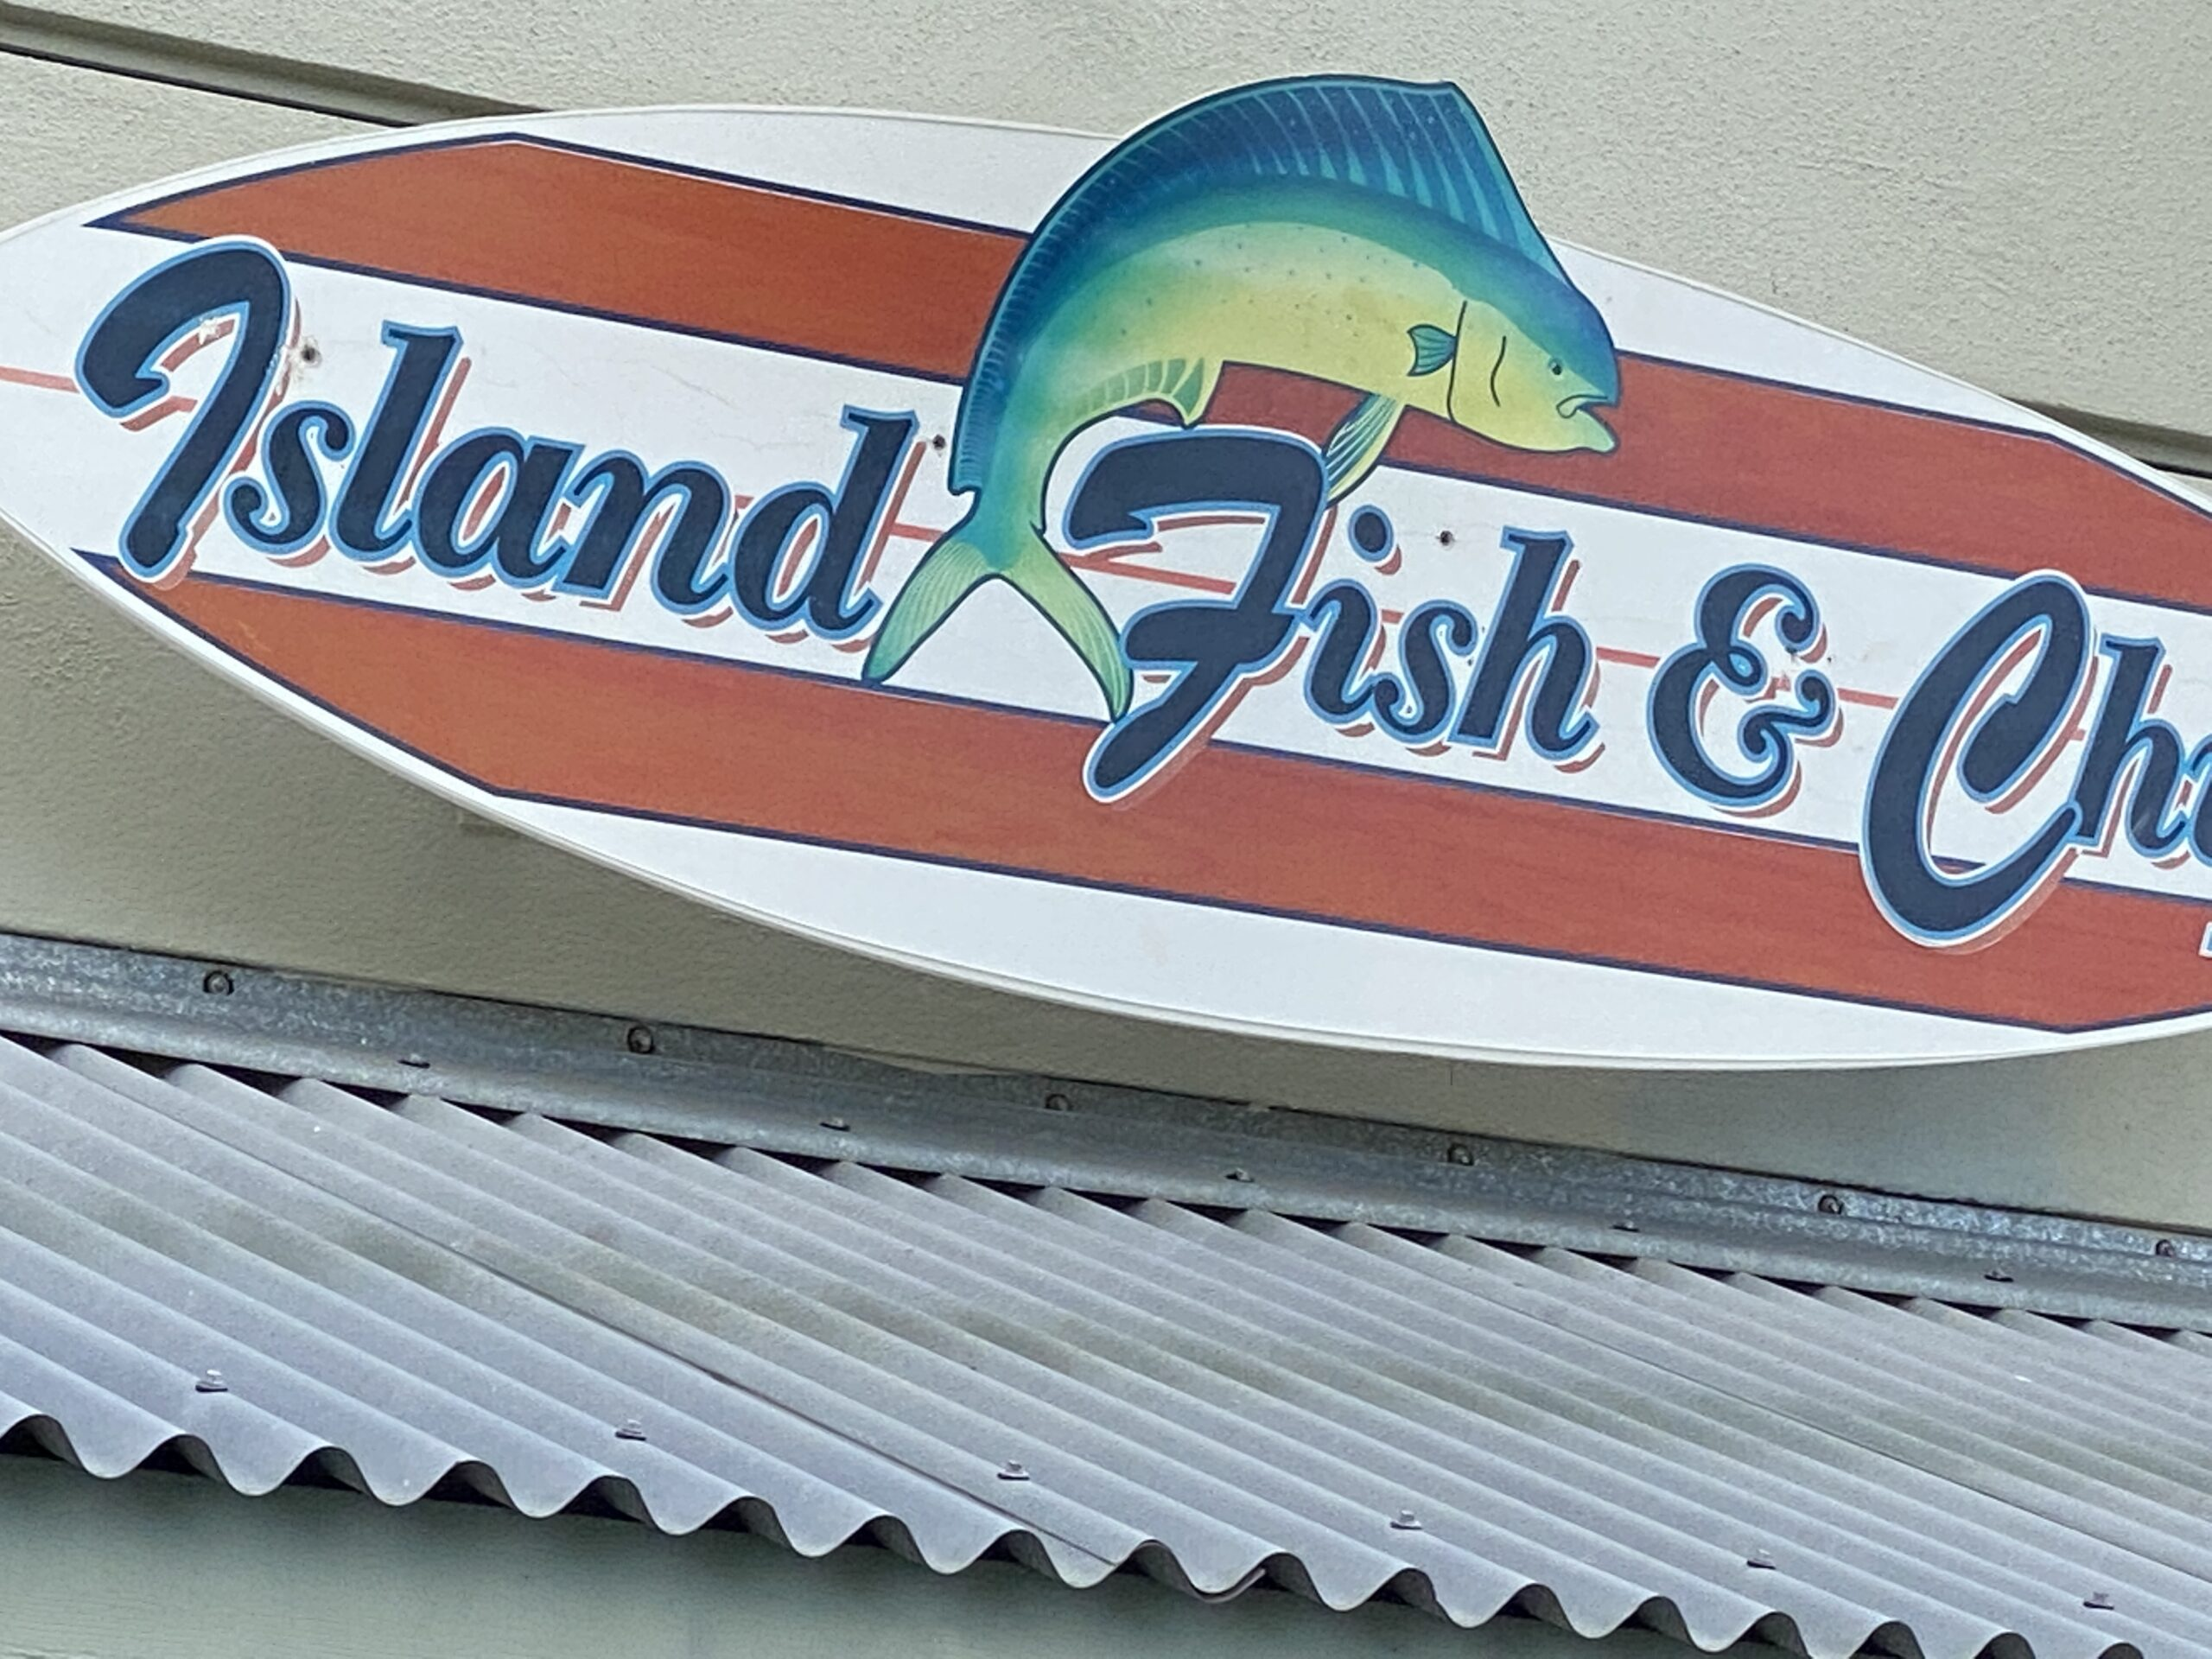 Island Fish and Chips